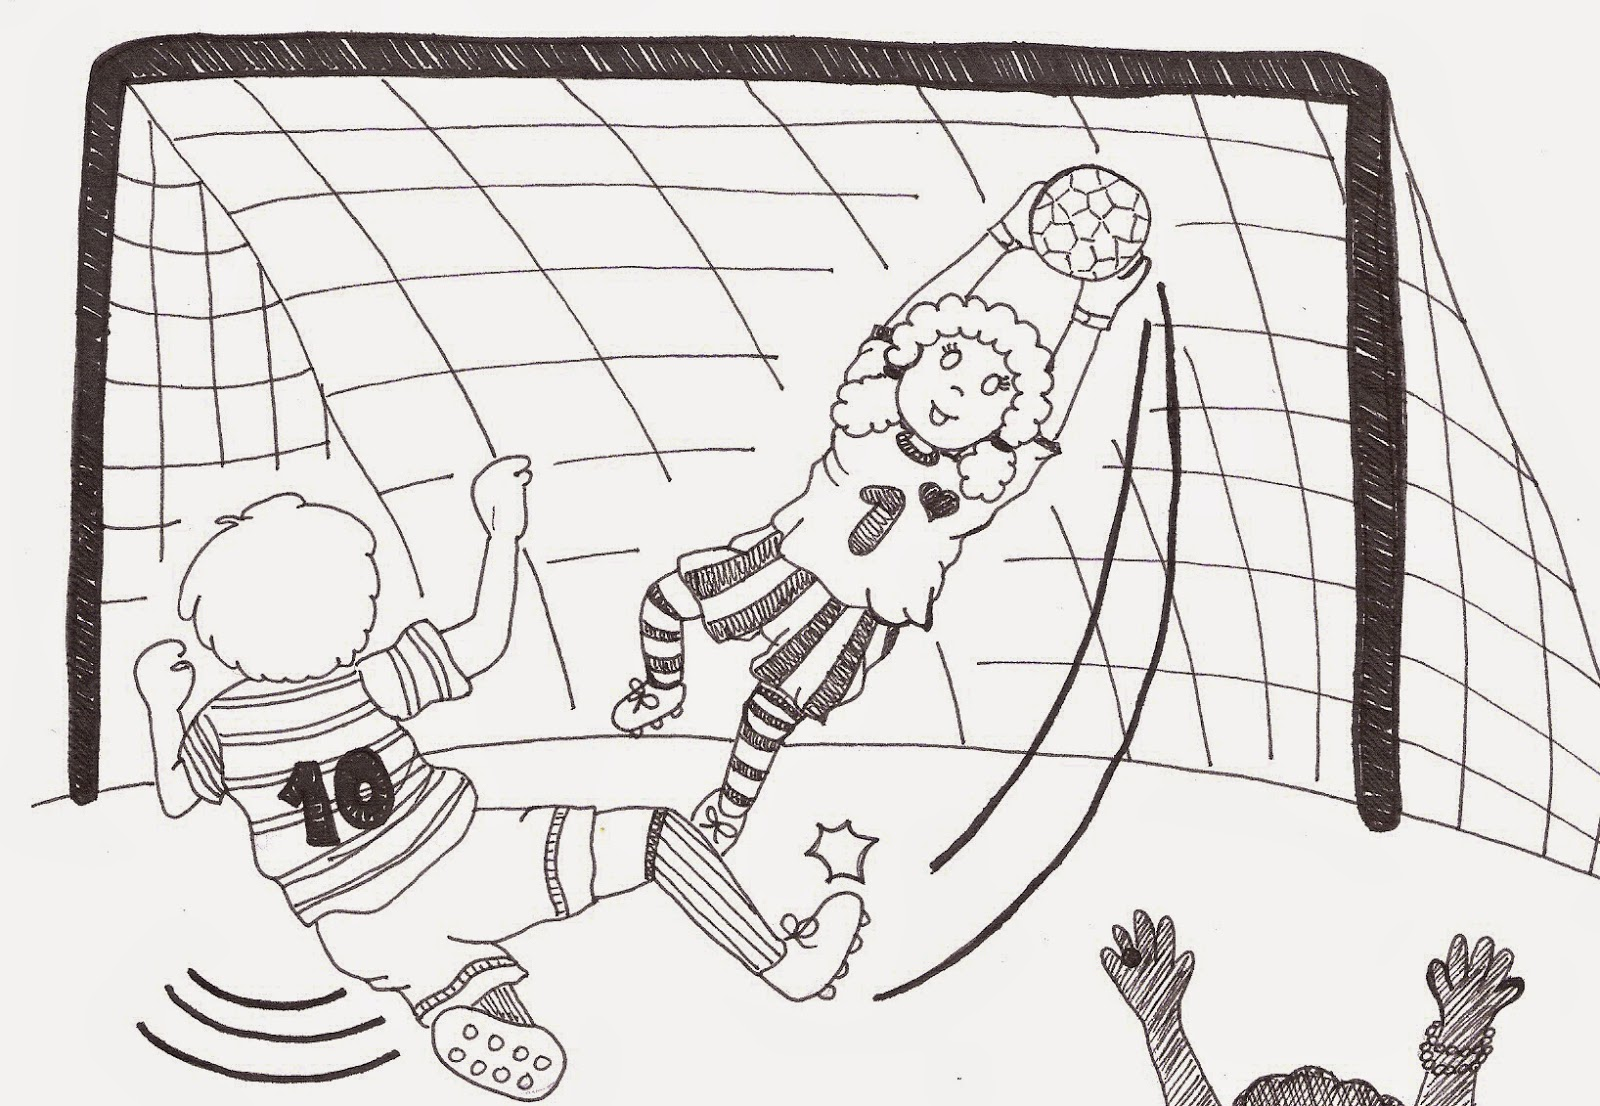 Day 47 drawing a footballer with dave cousin